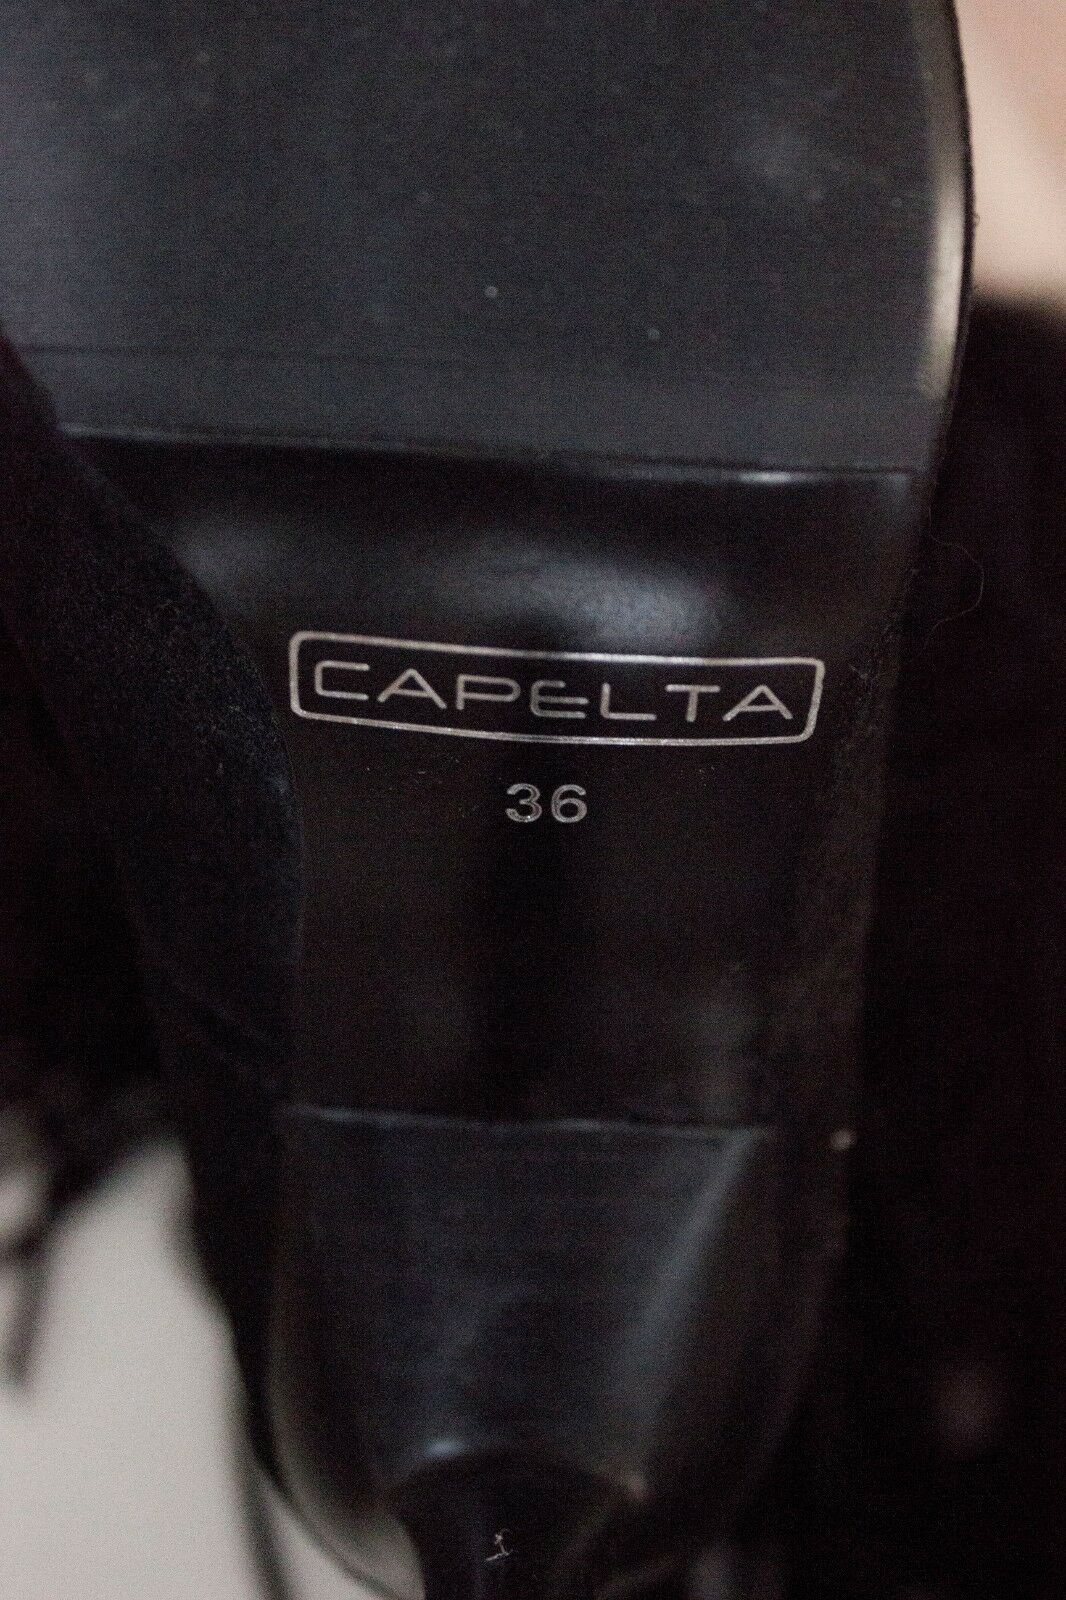 Capelta Couture Sahara Sahara Sahara Breeze Black Boots   High End   Luxury ba67b7